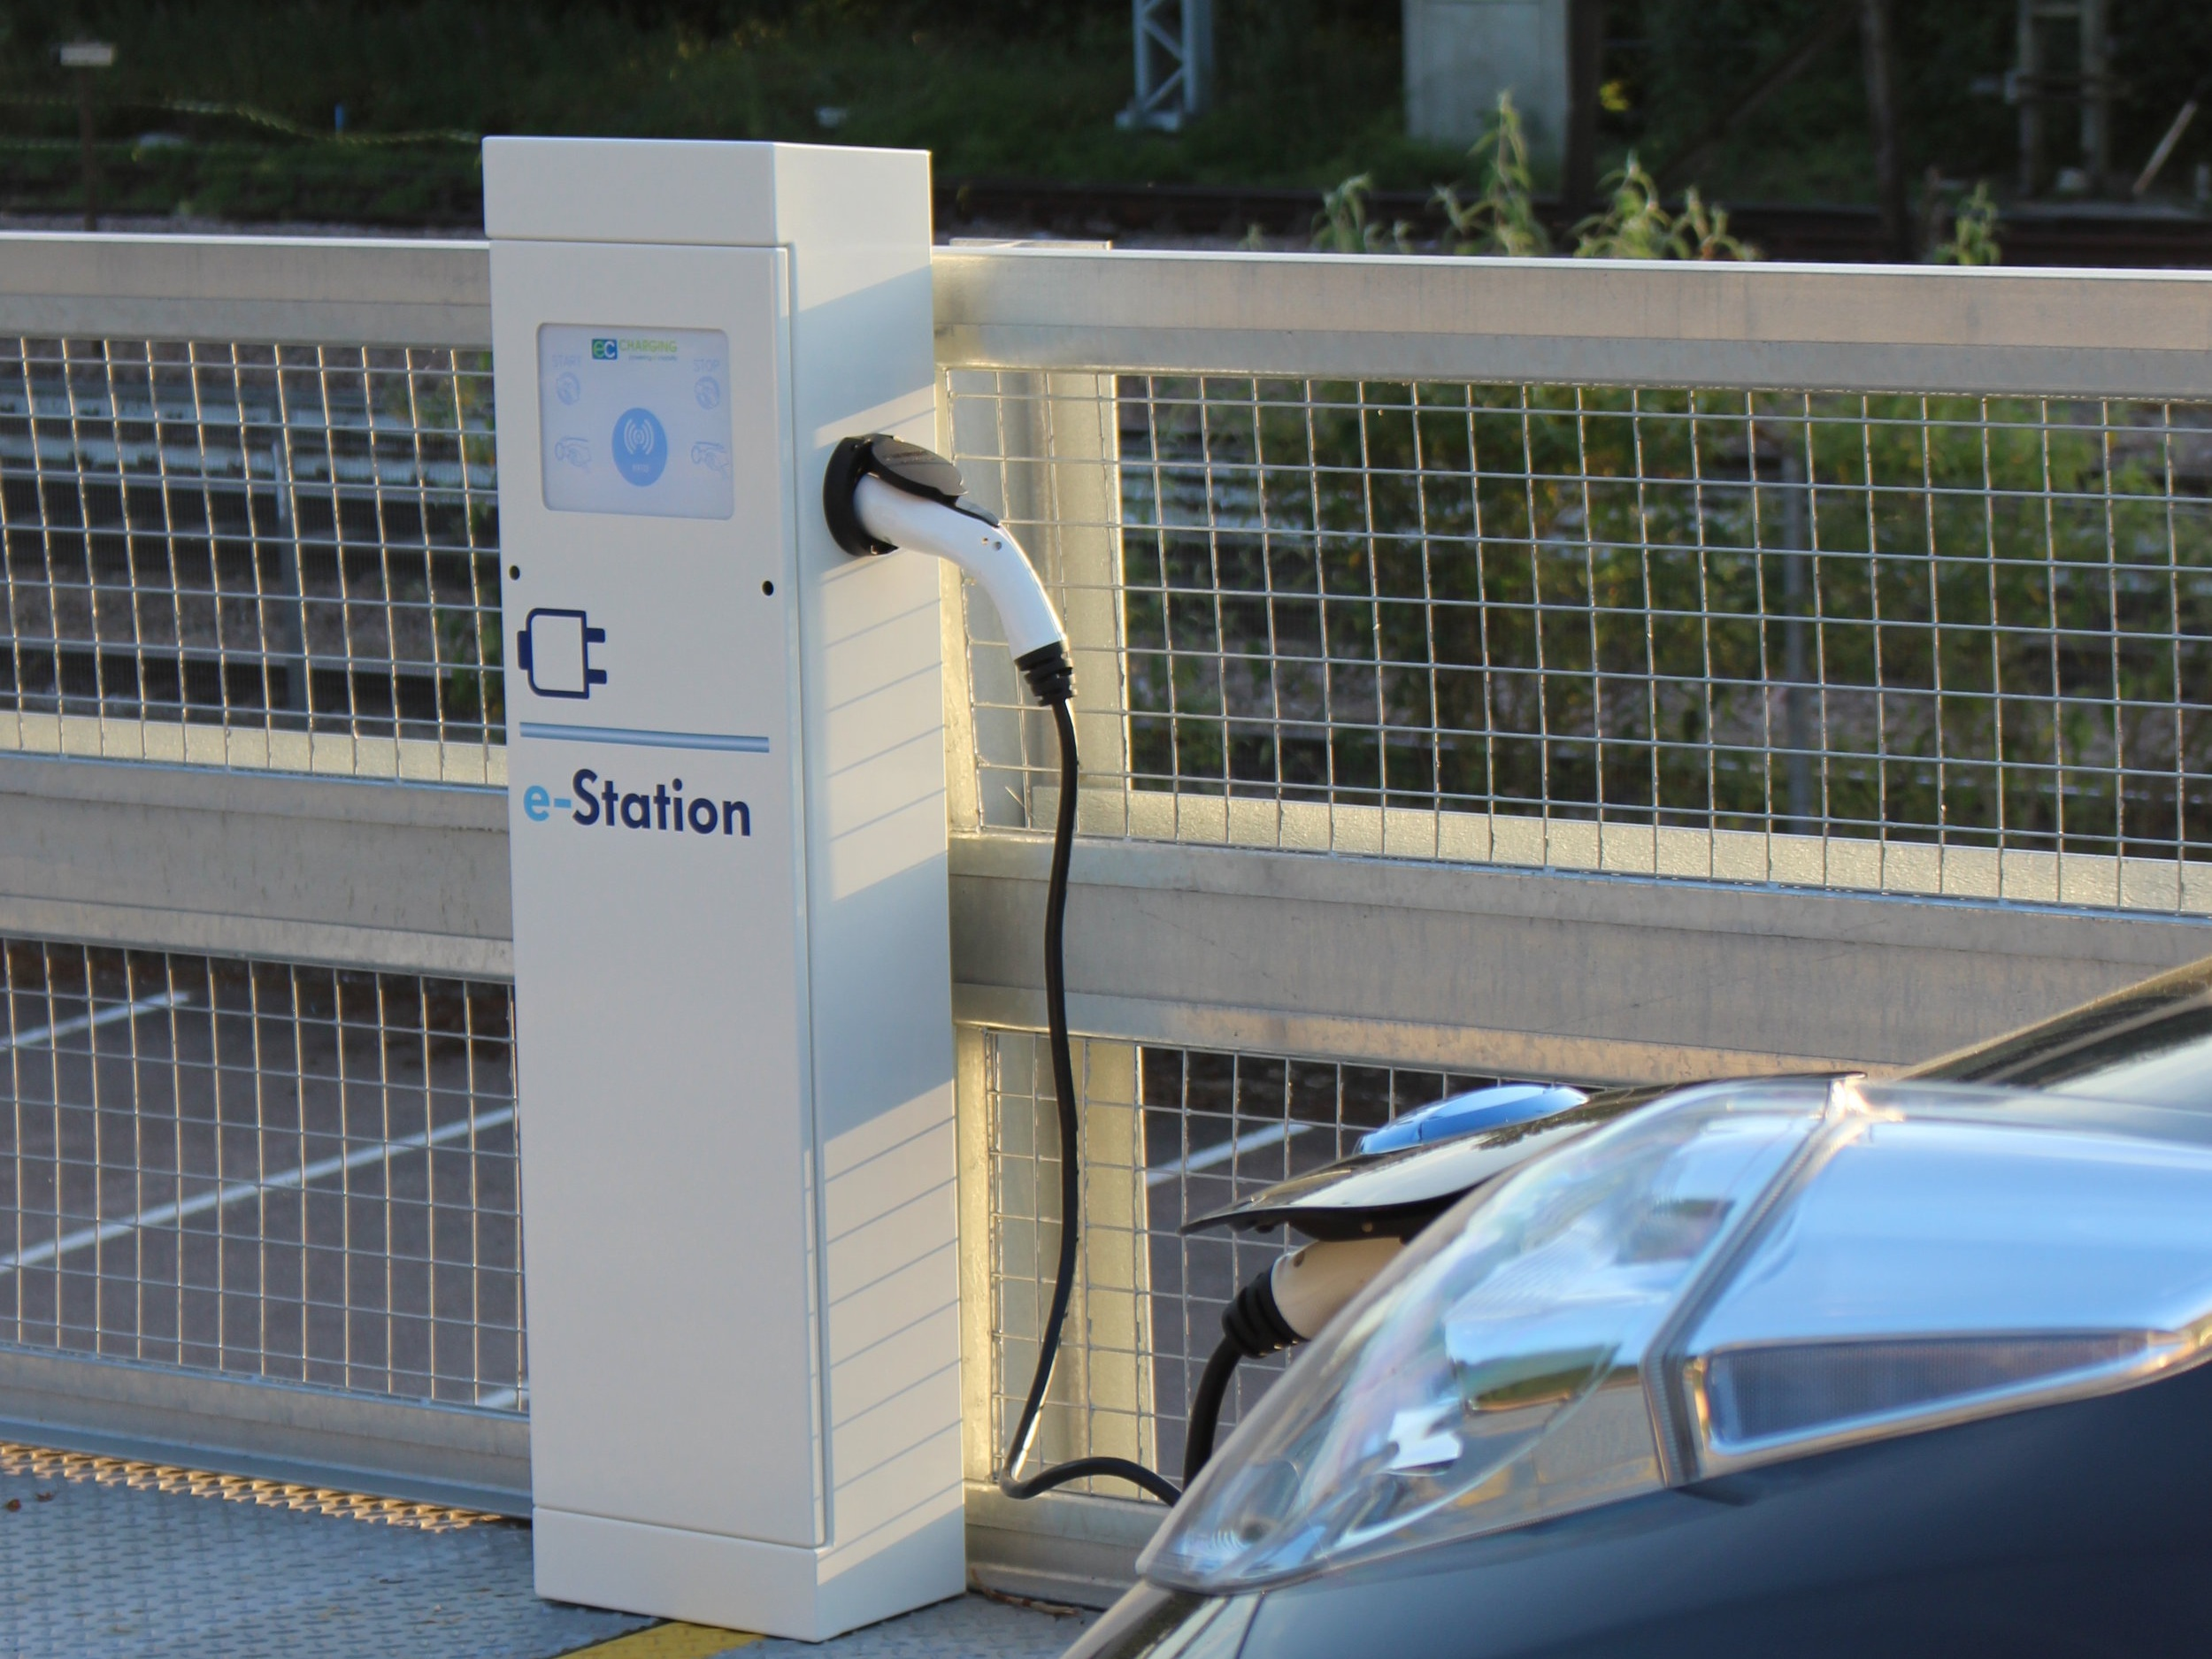 Public - Providing EV charging to local authorities and utilities